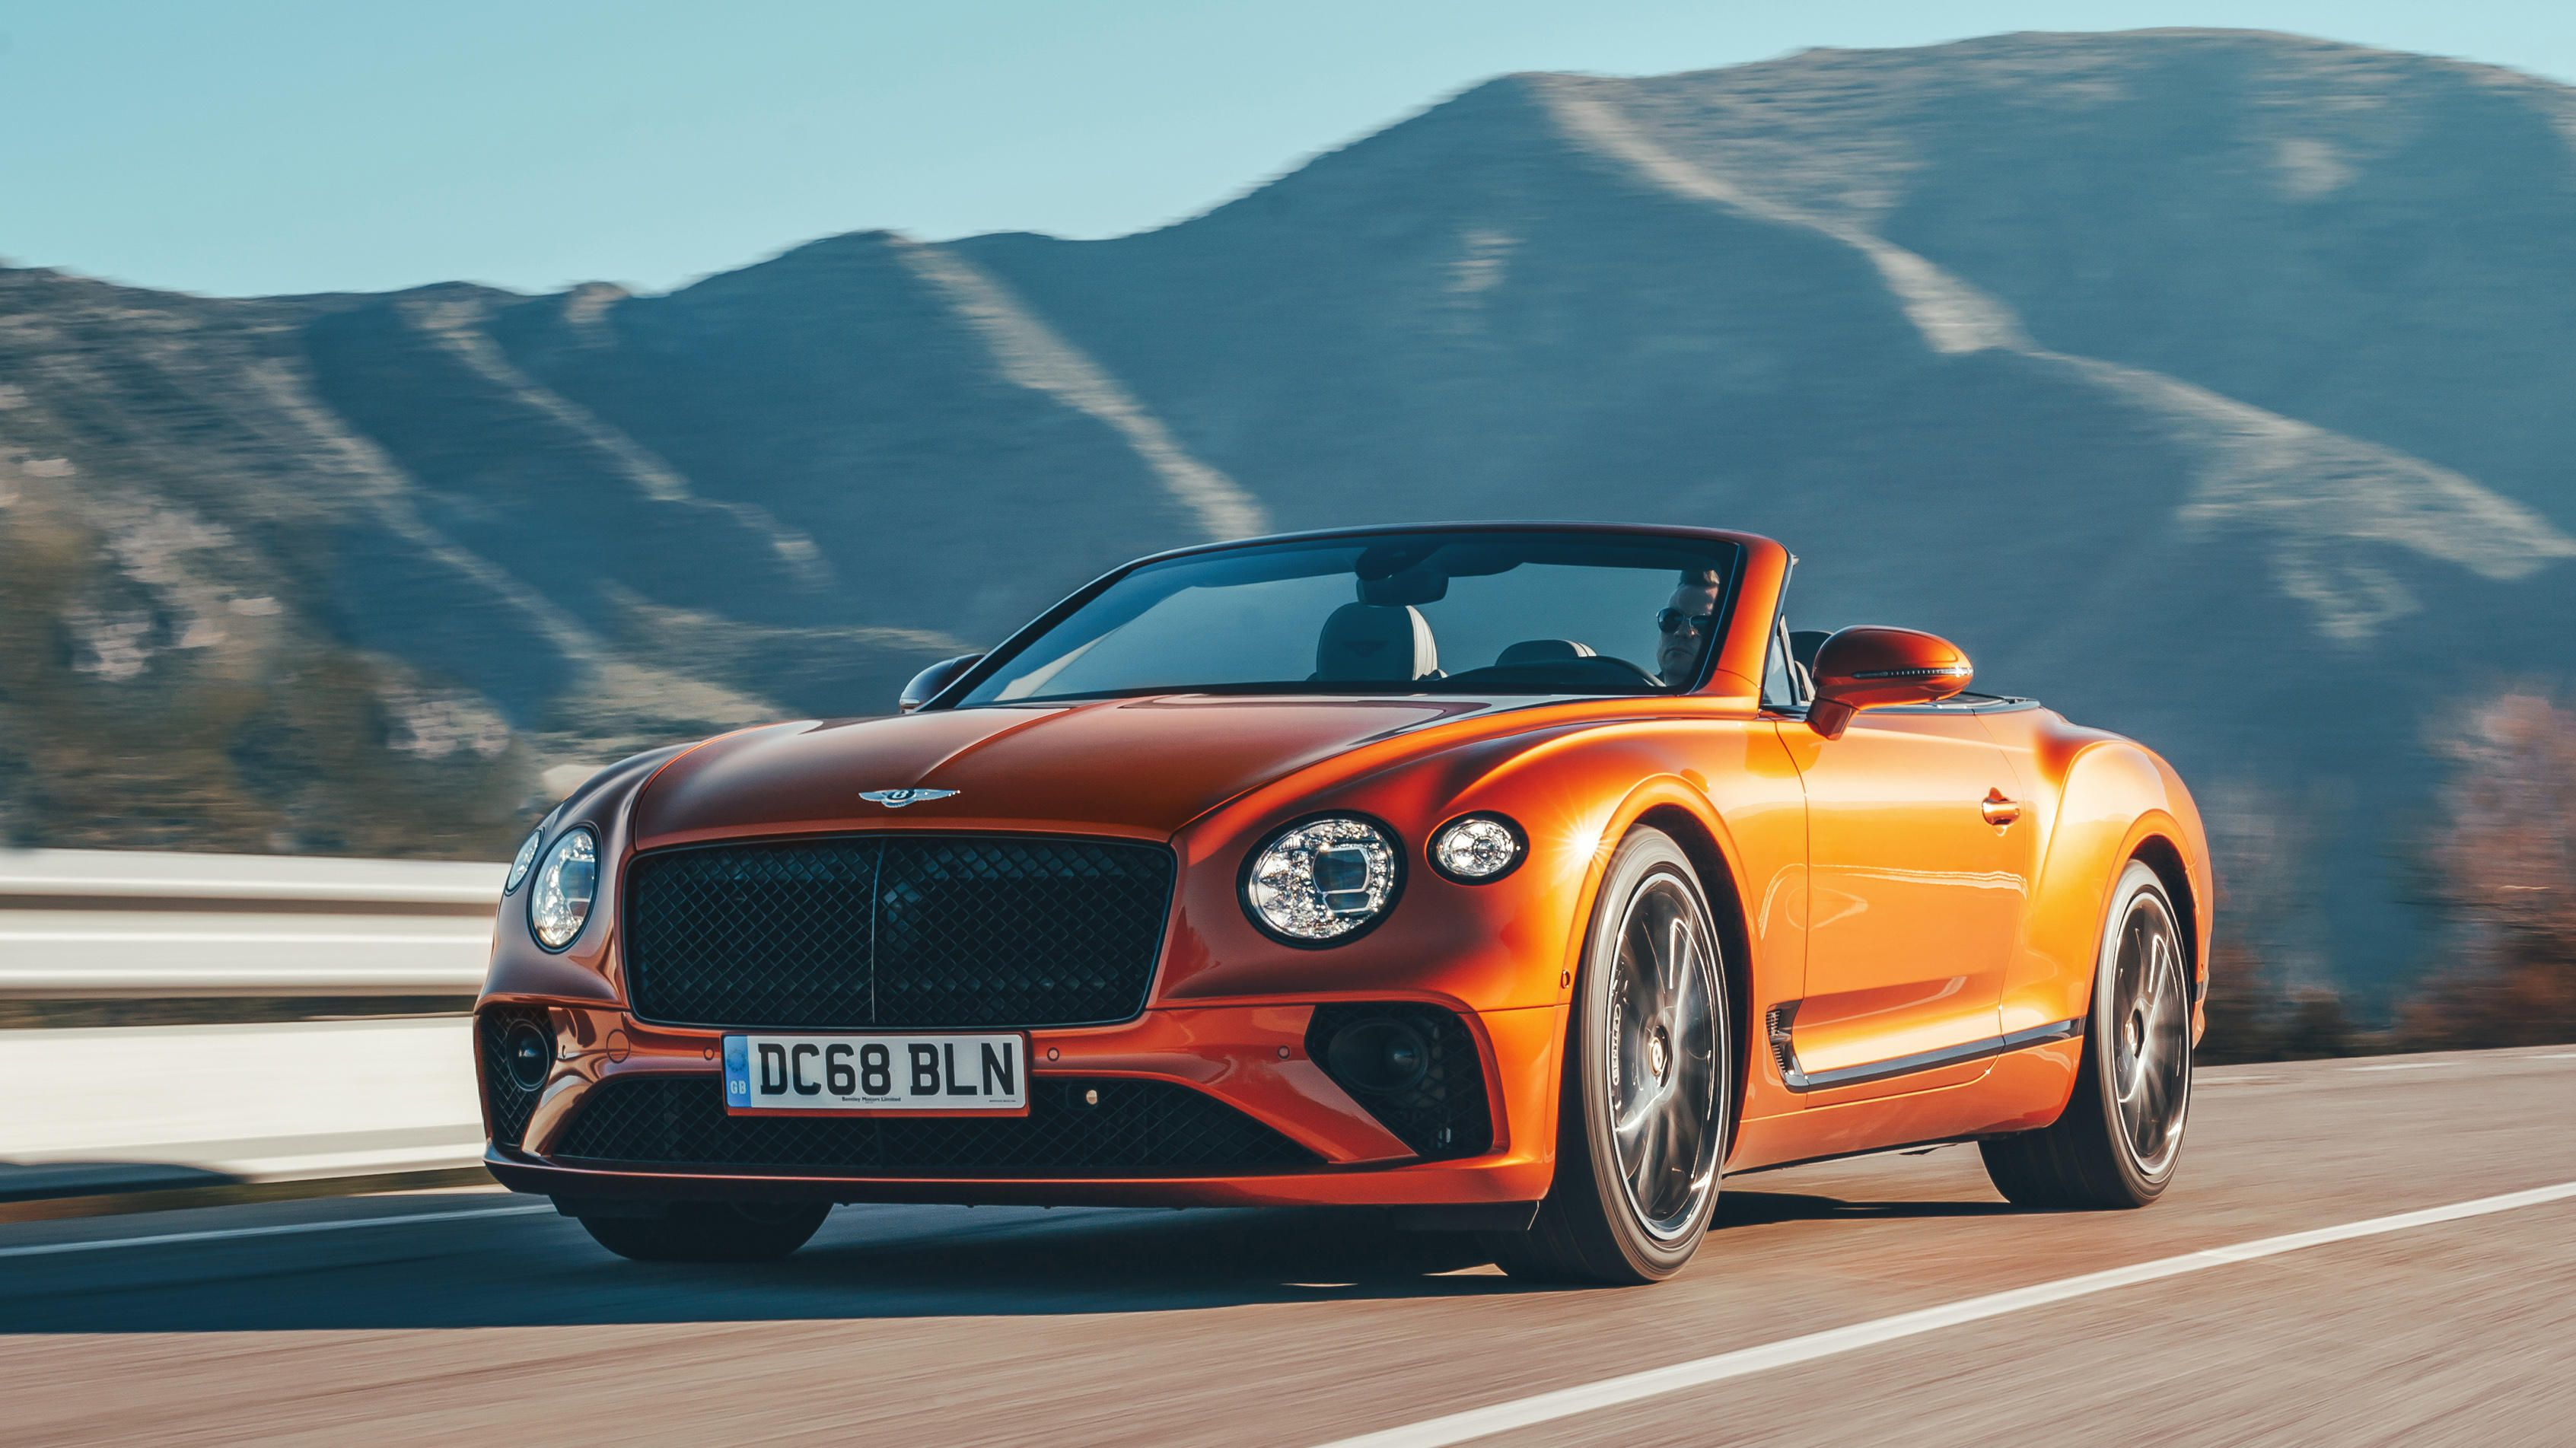 2019-bentley-continental-gt-convertible-orange-flame-ogi2